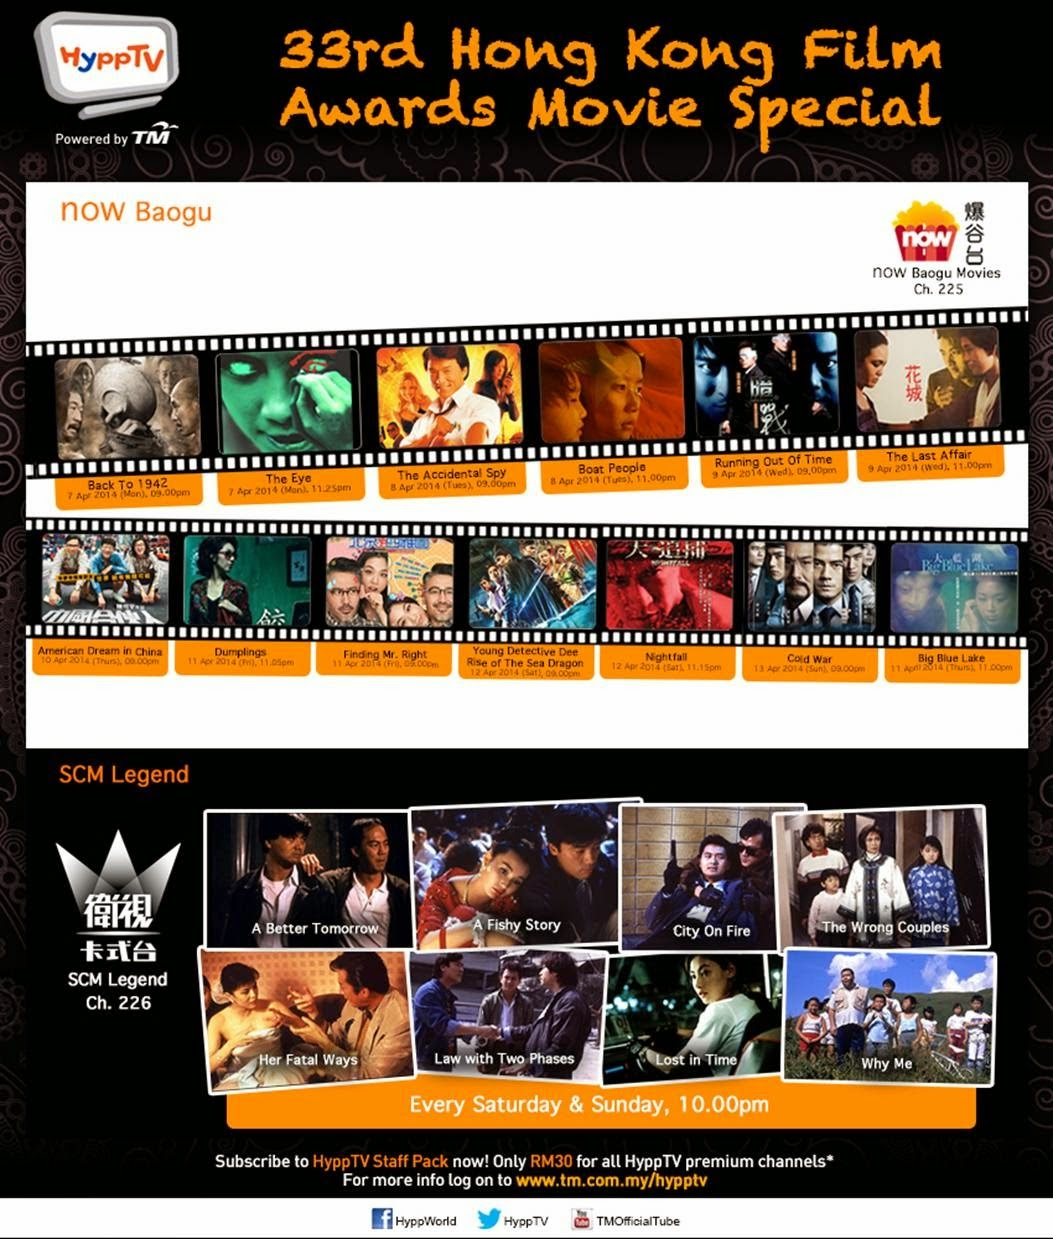 33rd Hong Kong Film Awards Movie Special every Saturday and Sunday